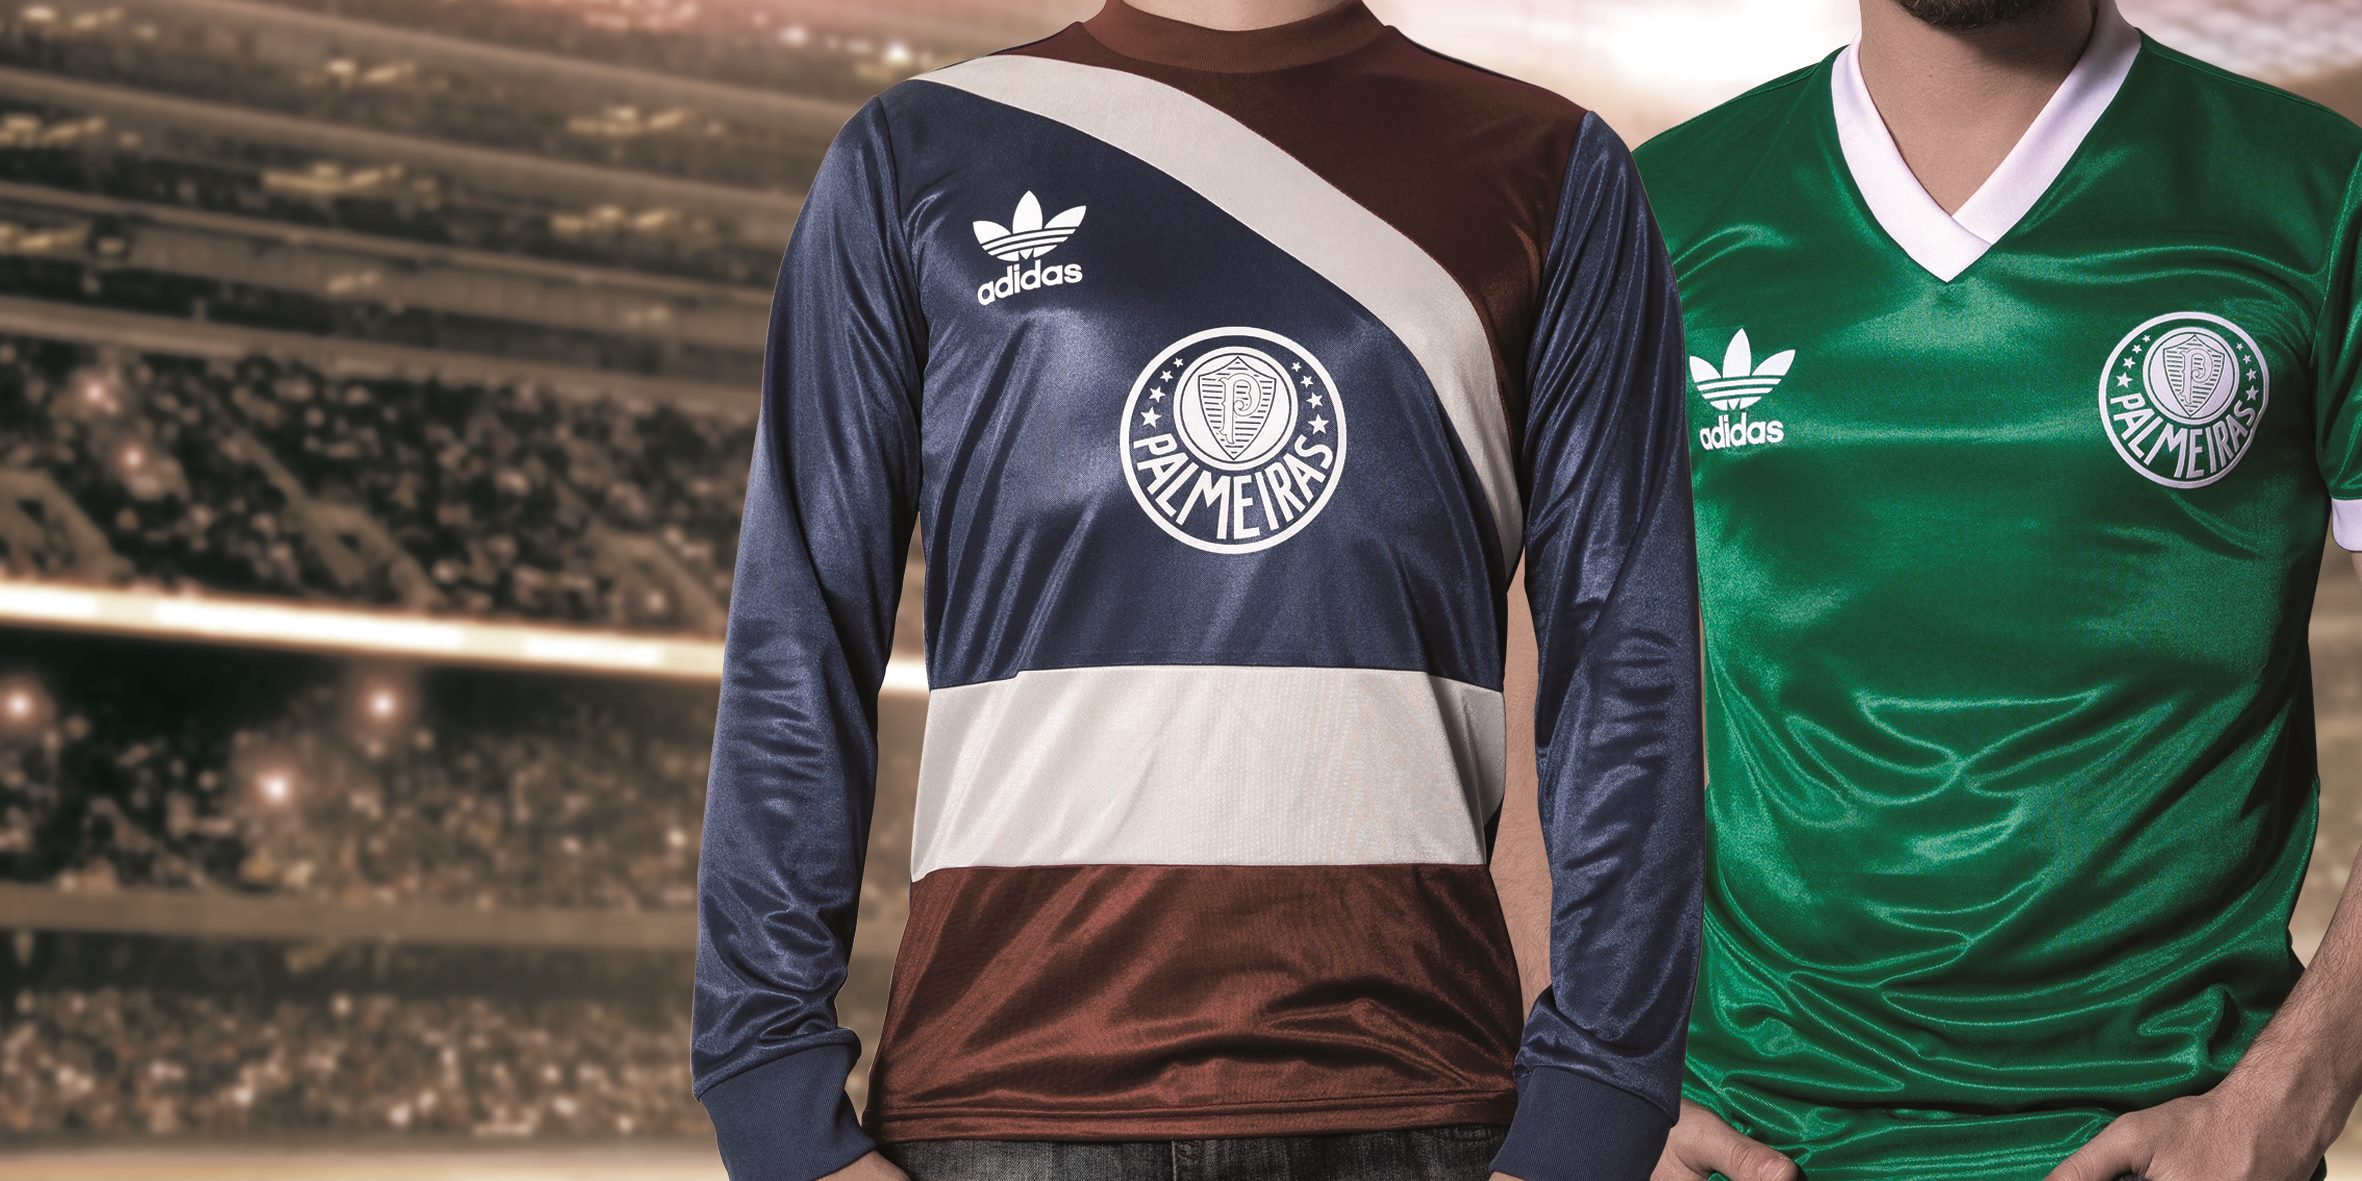 ... camisas retrôs do Palmeiras · https   www.facebook.com adidasFutebol bb262a6dffb82